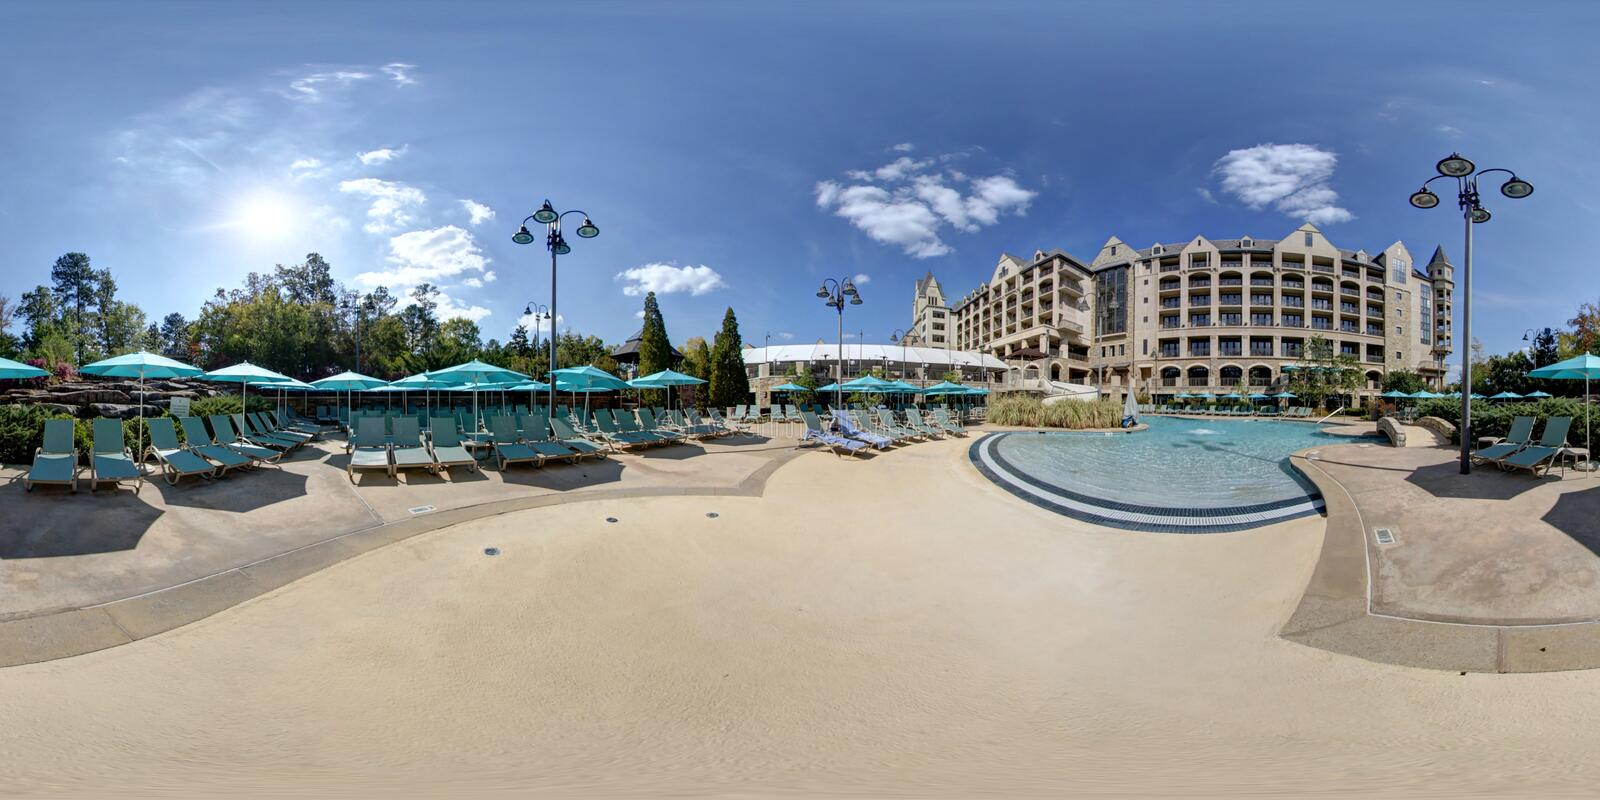 Download 360 Degree Hotel And Swimming Pool Stock Image